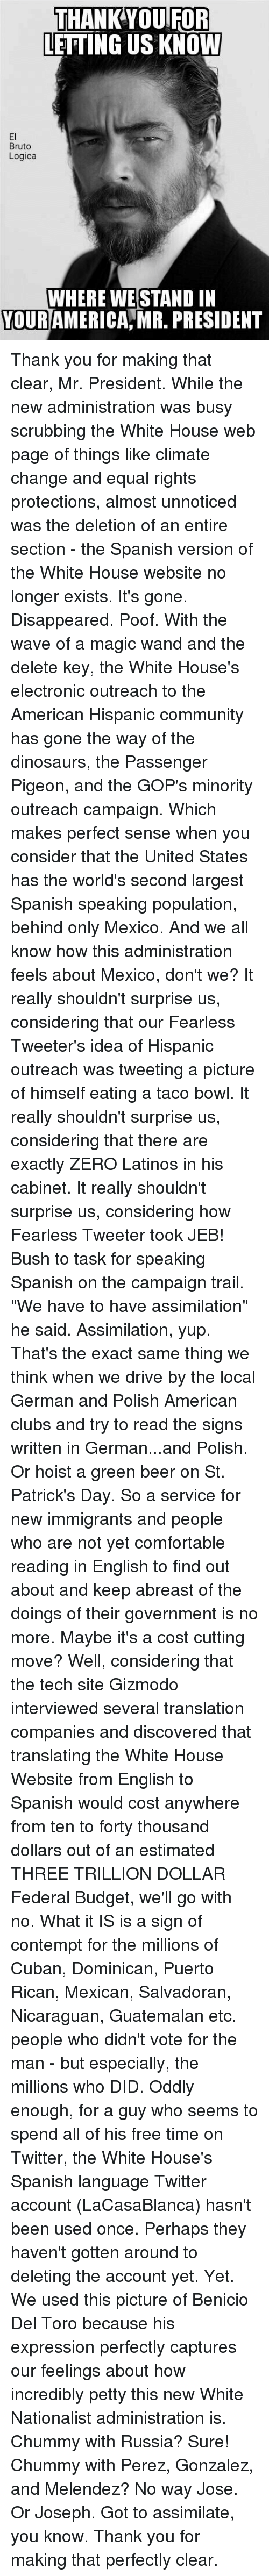 """English To Spanish: THANK YOU FOR  LETTING US KNOW  Bruto  Logica  WHERE WESTAND IN  YOURAMERICAMR PRESIDENT Thank you for making that clear, Mr. President.   While the new administration was busy scrubbing the White House web page of things like climate change and equal rights protections, almost unnoticed was the deletion of an entire section - the Spanish version of the White House website no longer exists.   It's gone. Disappeared. Poof. With the wave of a magic wand and the delete key, the White House's electronic outreach to the American Hispanic community has gone the way of the dinosaurs, the Passenger Pigeon, and the GOP's minority outreach campaign.   Which makes perfect sense when you consider that the United States has the world's second largest Spanish speaking population, behind only Mexico.   And we all know how this administration feels about Mexico, don't we?   It really shouldn't surprise us, considering that our Fearless Tweeter's idea of Hispanic outreach was tweeting a picture of himself eating a taco bowl.   It really shouldn't surprise us, considering that there are exactly ZERO Latinos in his cabinet.   It really shouldn't surprise us, considering how Fearless Tweeter took JEB! Bush to task for speaking Spanish on the campaign trail. """"We have to have assimilation"""" he said.   Assimilation, yup. That's the exact same thing we think when we drive by the local German and Polish American clubs and try to read the signs written in German...and Polish. Or hoist a green beer on St. Patrick's Day.   So a service for new immigrants and people who are not yet comfortable reading in English to find out about and keep abreast of the doings of their government is no more. Maybe it's a cost cutting move?   Well, considering that the tech site Gizmodo interviewed several translation companies and discovered that translating the White House Website from English to Spanish would cost anywhere from ten to forty thousand dollars out of an estimated THREE TRILLIO"""